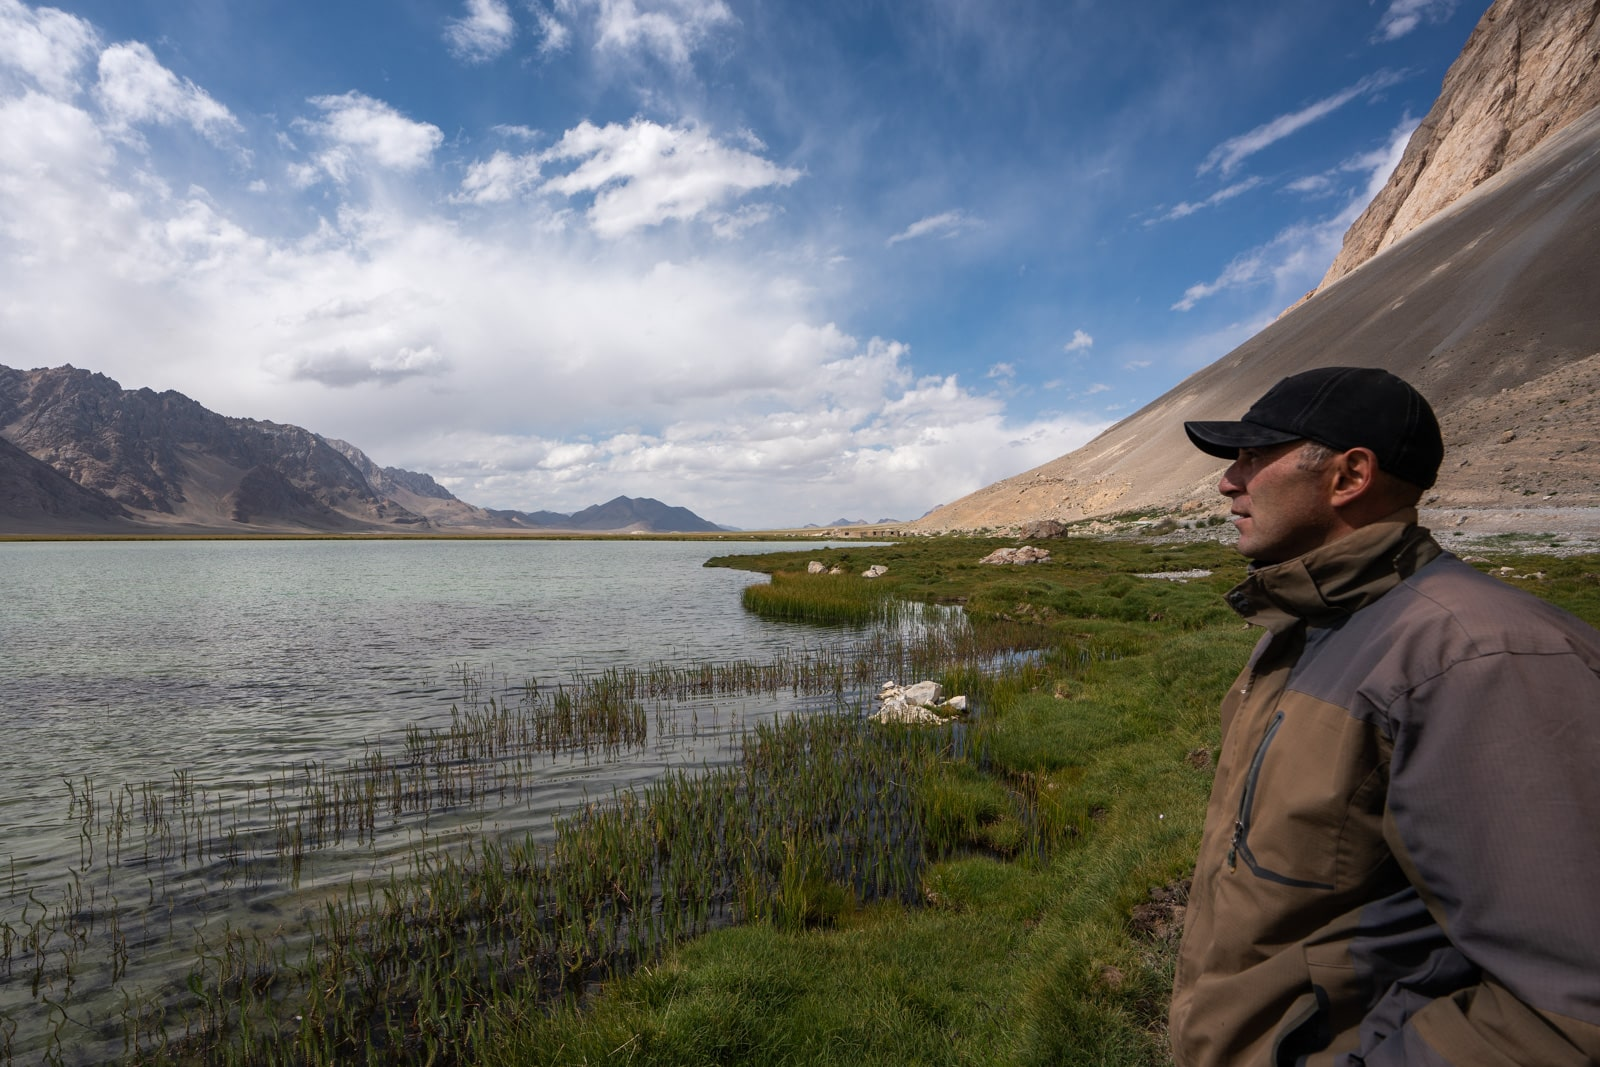 Local man at a lake in the Pamir Mountains of Eastern Tajikistan